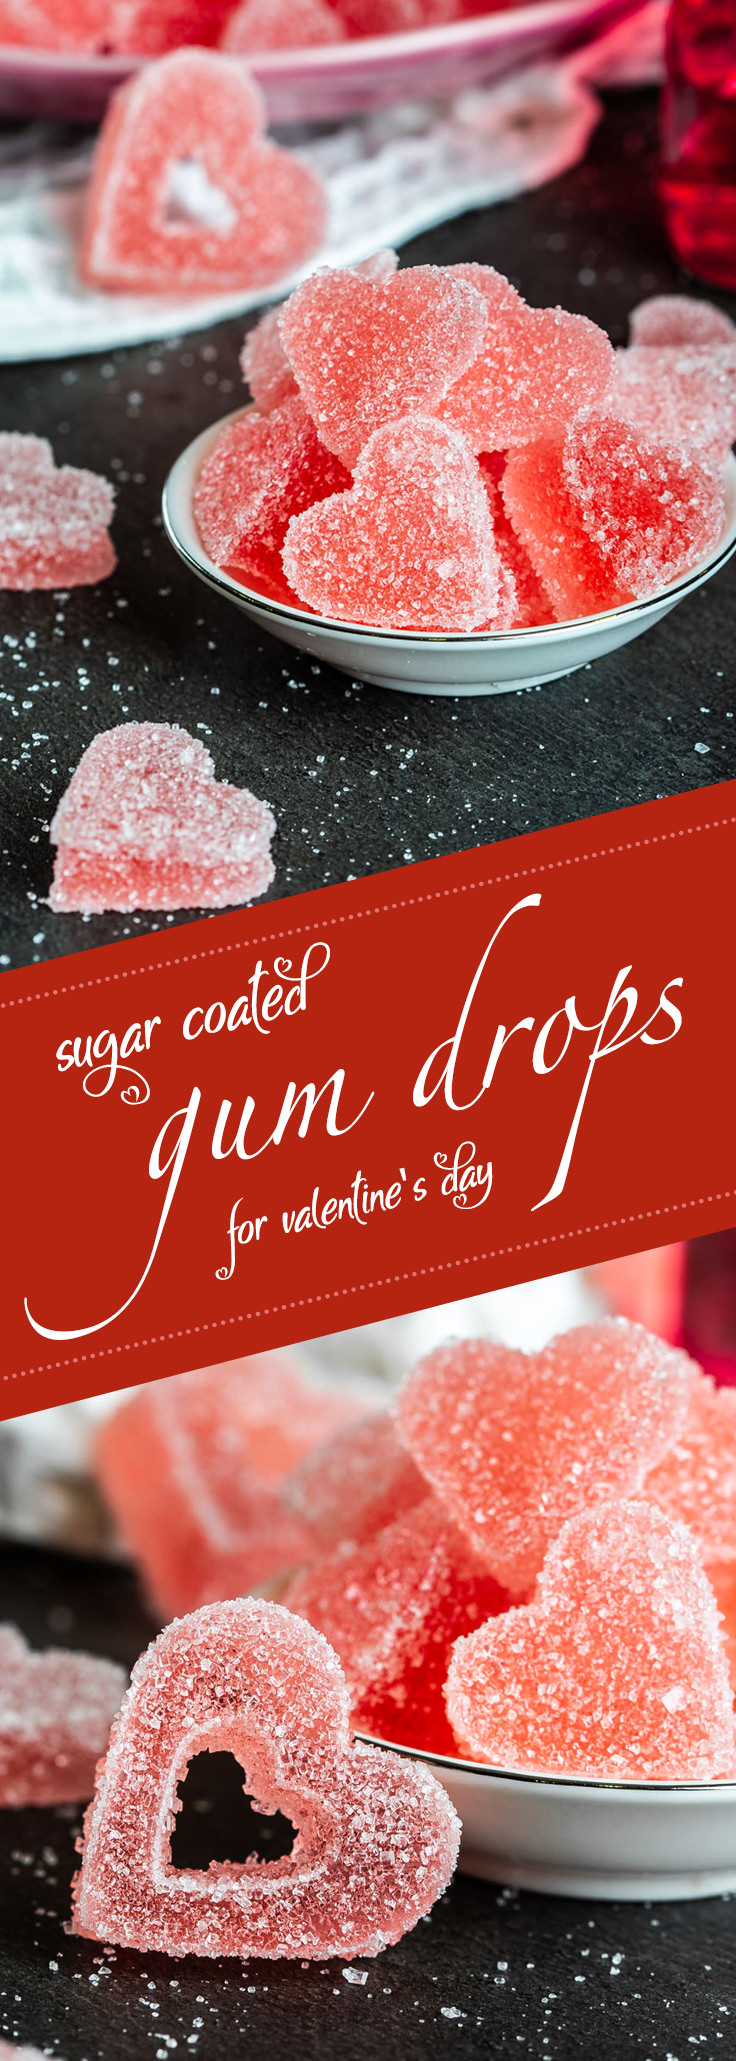 Gum drops coated in sugar Pinterest recipe card